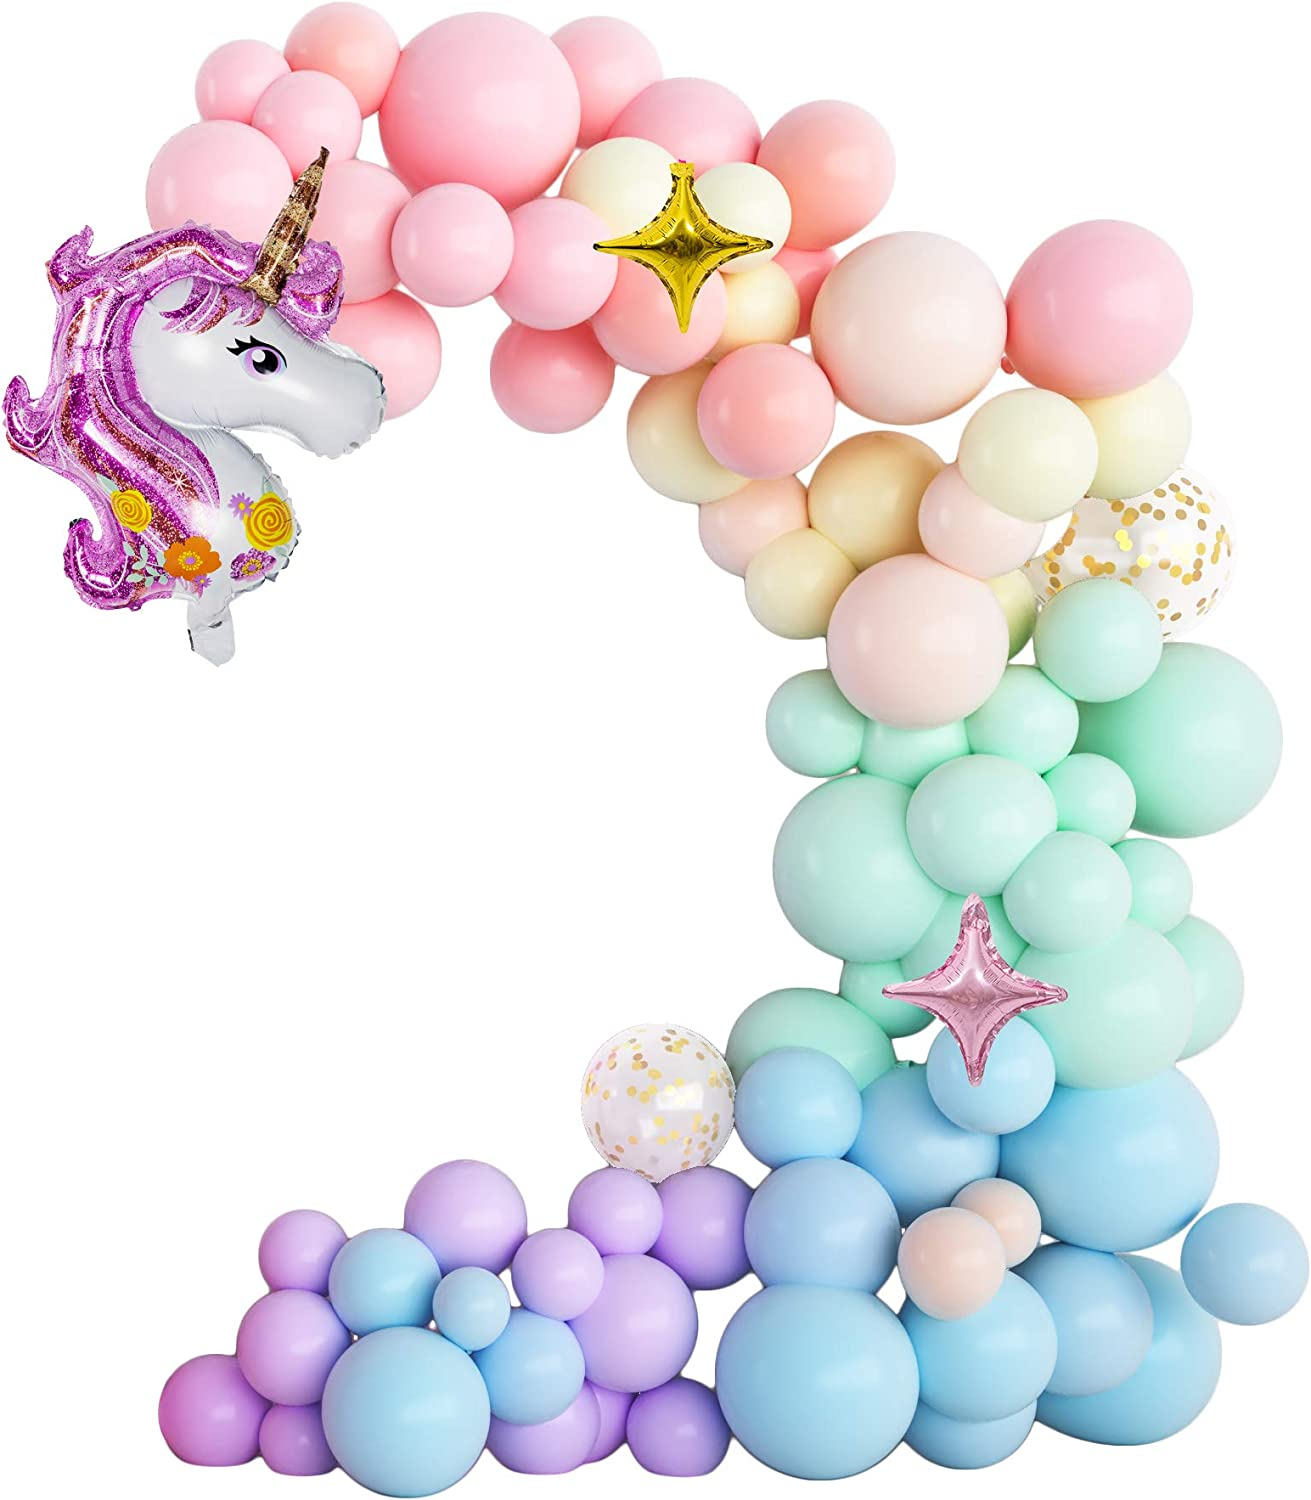 Tbwisher Unicorn Balloons Birthday Party Supplies - Pack of 79 for Birthday Balloon Bouquet Decorations, Baby Shower, Home Office Decor, Birthday Backdrop,Wedding, Anniversary Graduation Party